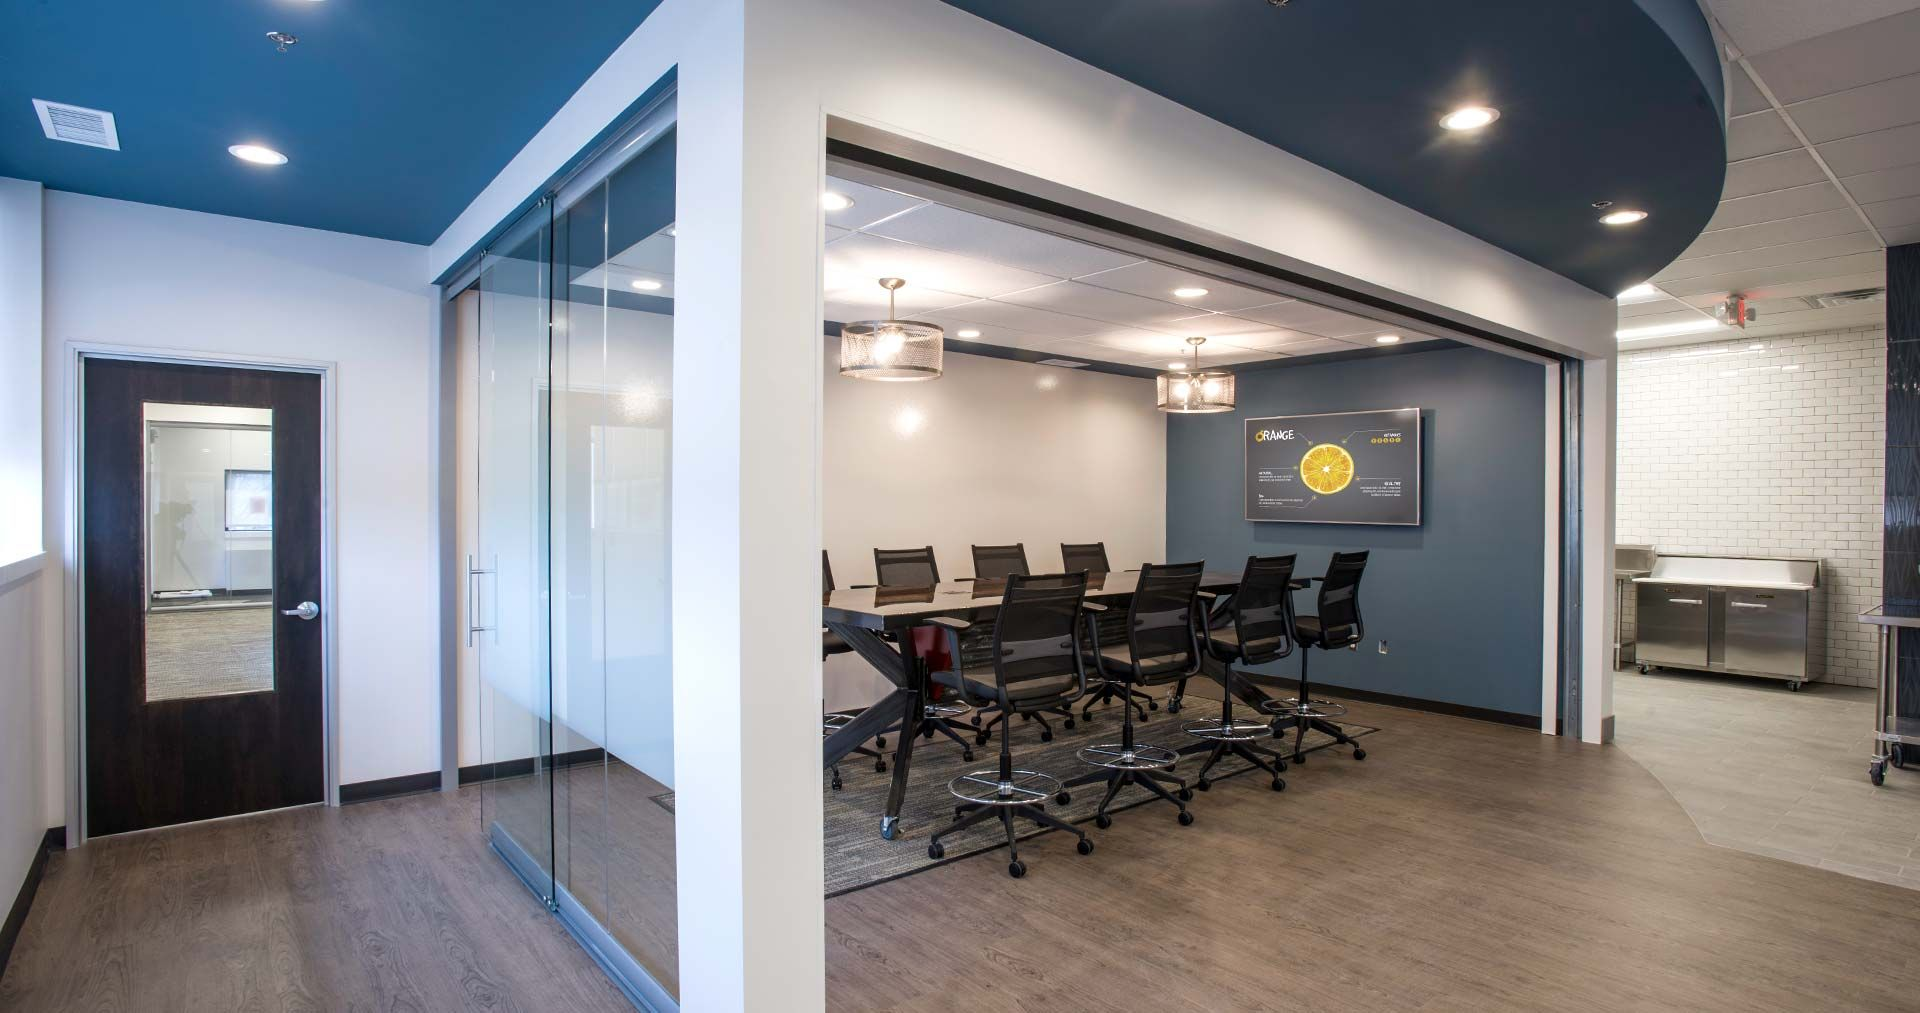 View Glass Partition By Nxtwall And Large Garage Door Create A Flexible Meeting Space The Stand Commercial Interiors Flexible Work Space Wood Conference Table